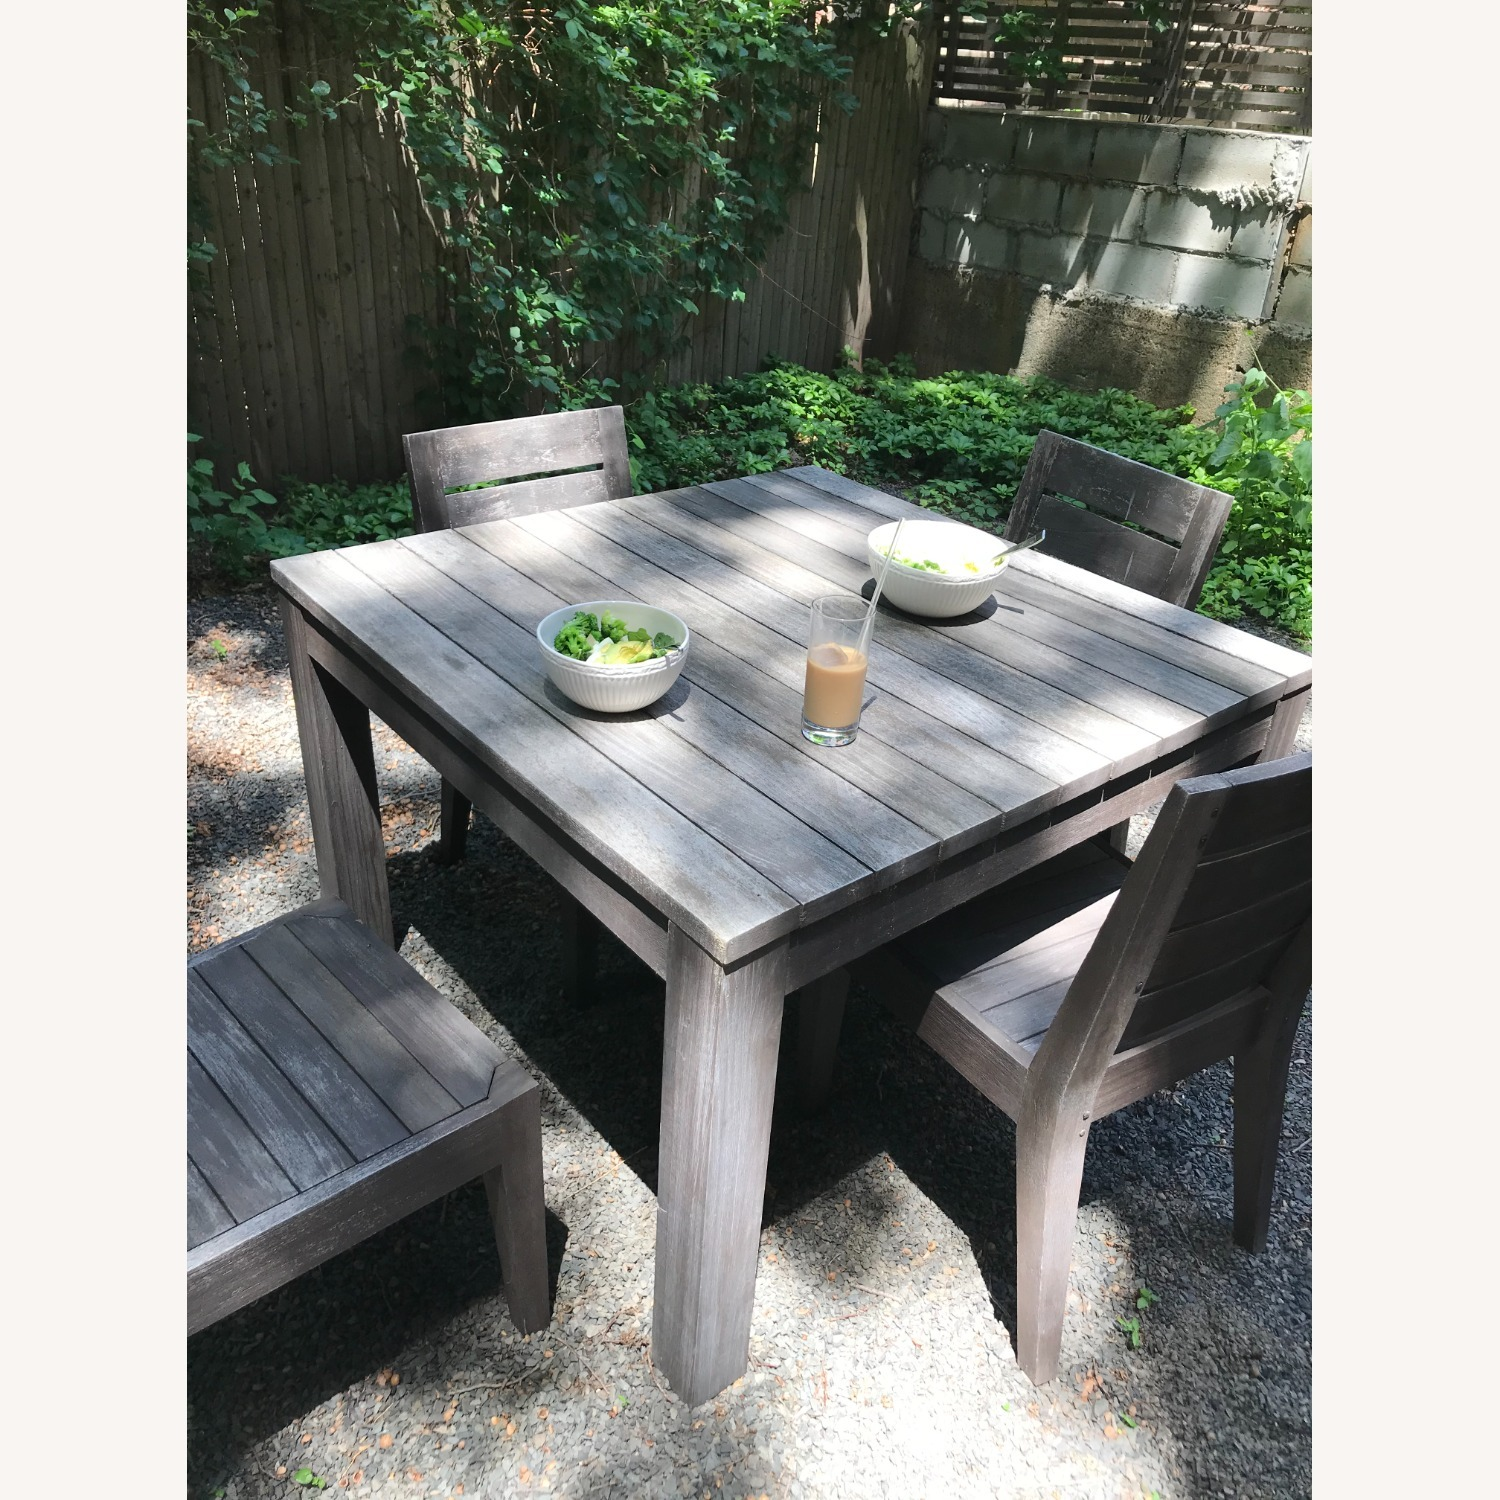 Restoration Hardware Teak Table and Side Chairs - image-1